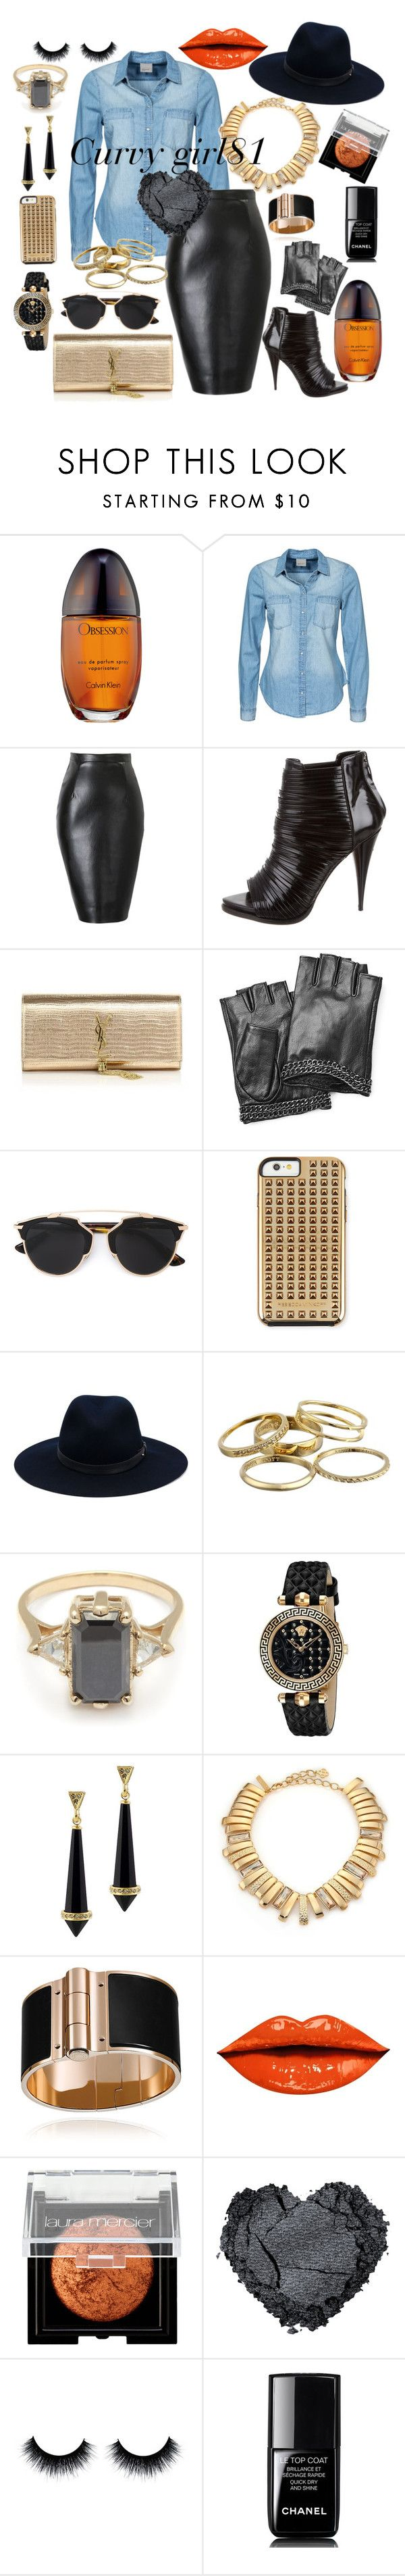 """strong gold"" by pretty-girl81 on Polyvore featuring moda, Calvin Klein, Vero Moda, Givenchy, Yves Saint Laurent, Karl Lagerfeld, Christian Dior, Rebecca Minkoff, rag & bone e Kendra Scott"